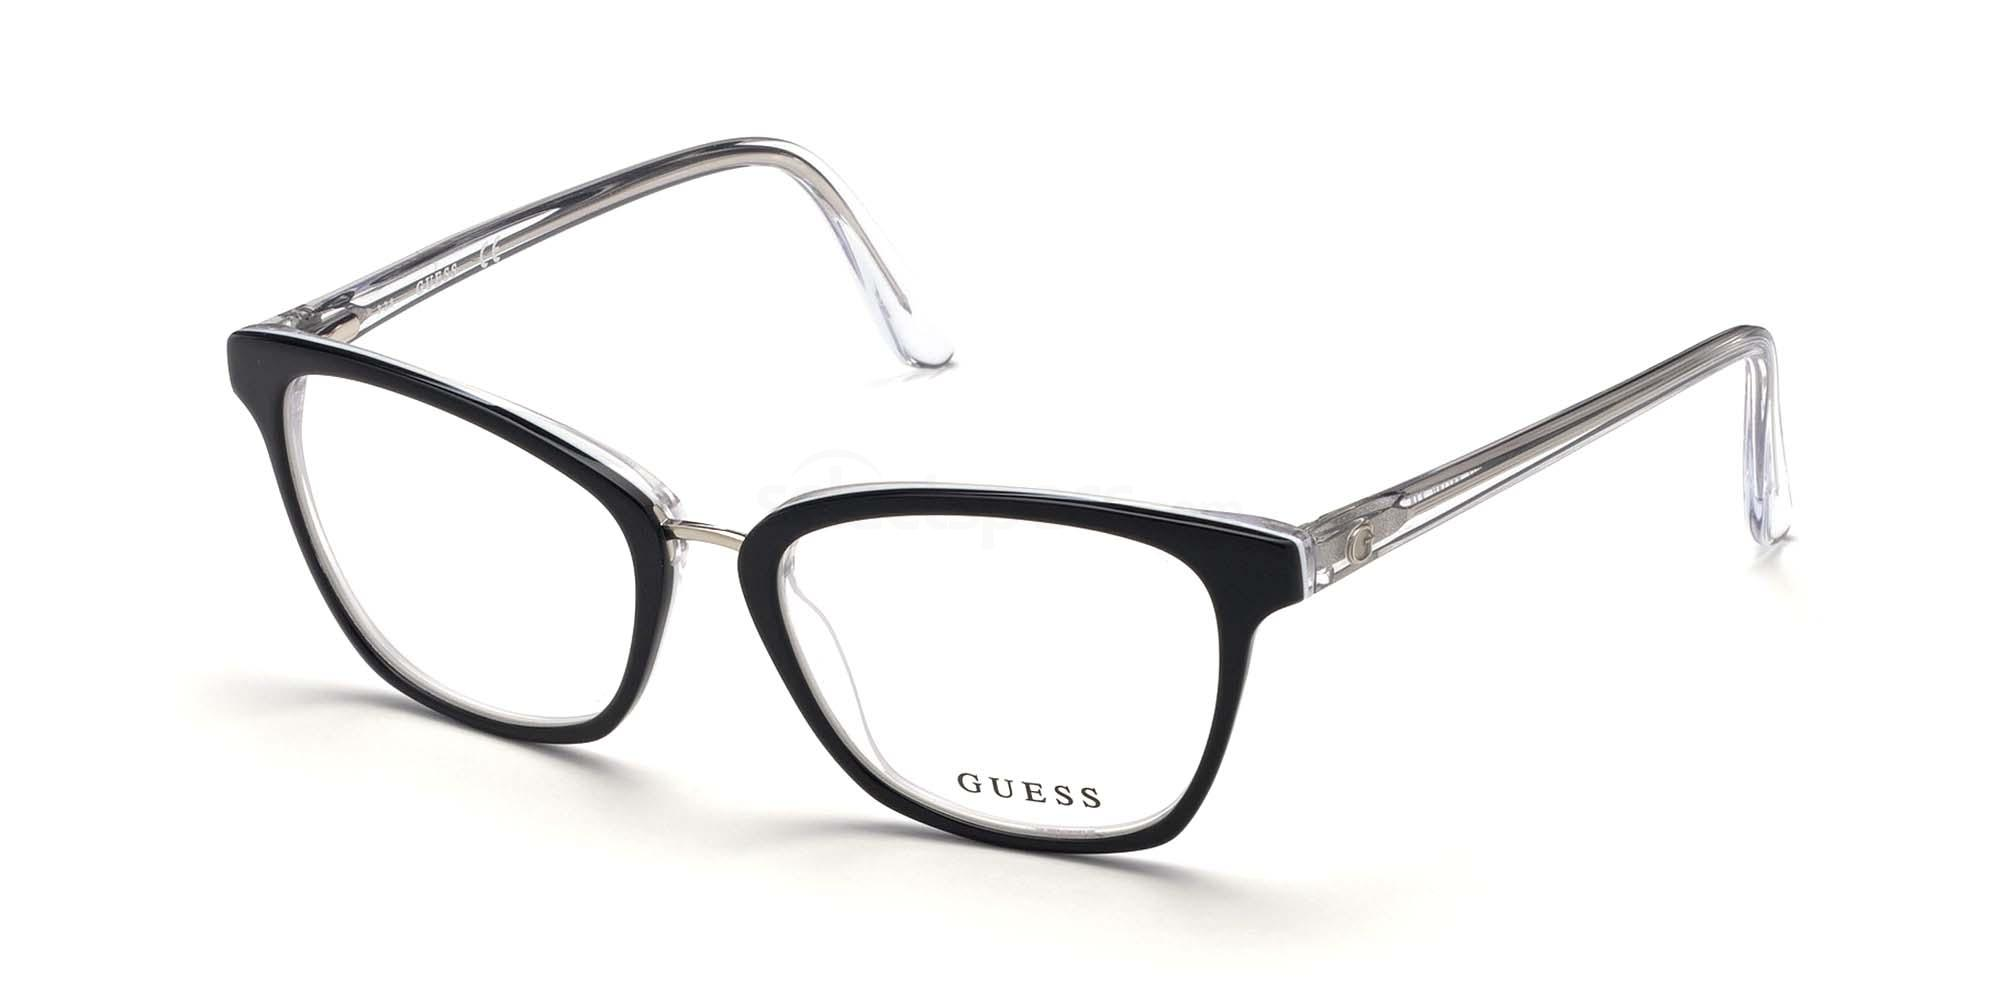 003 GU2733 Glasses, Guess